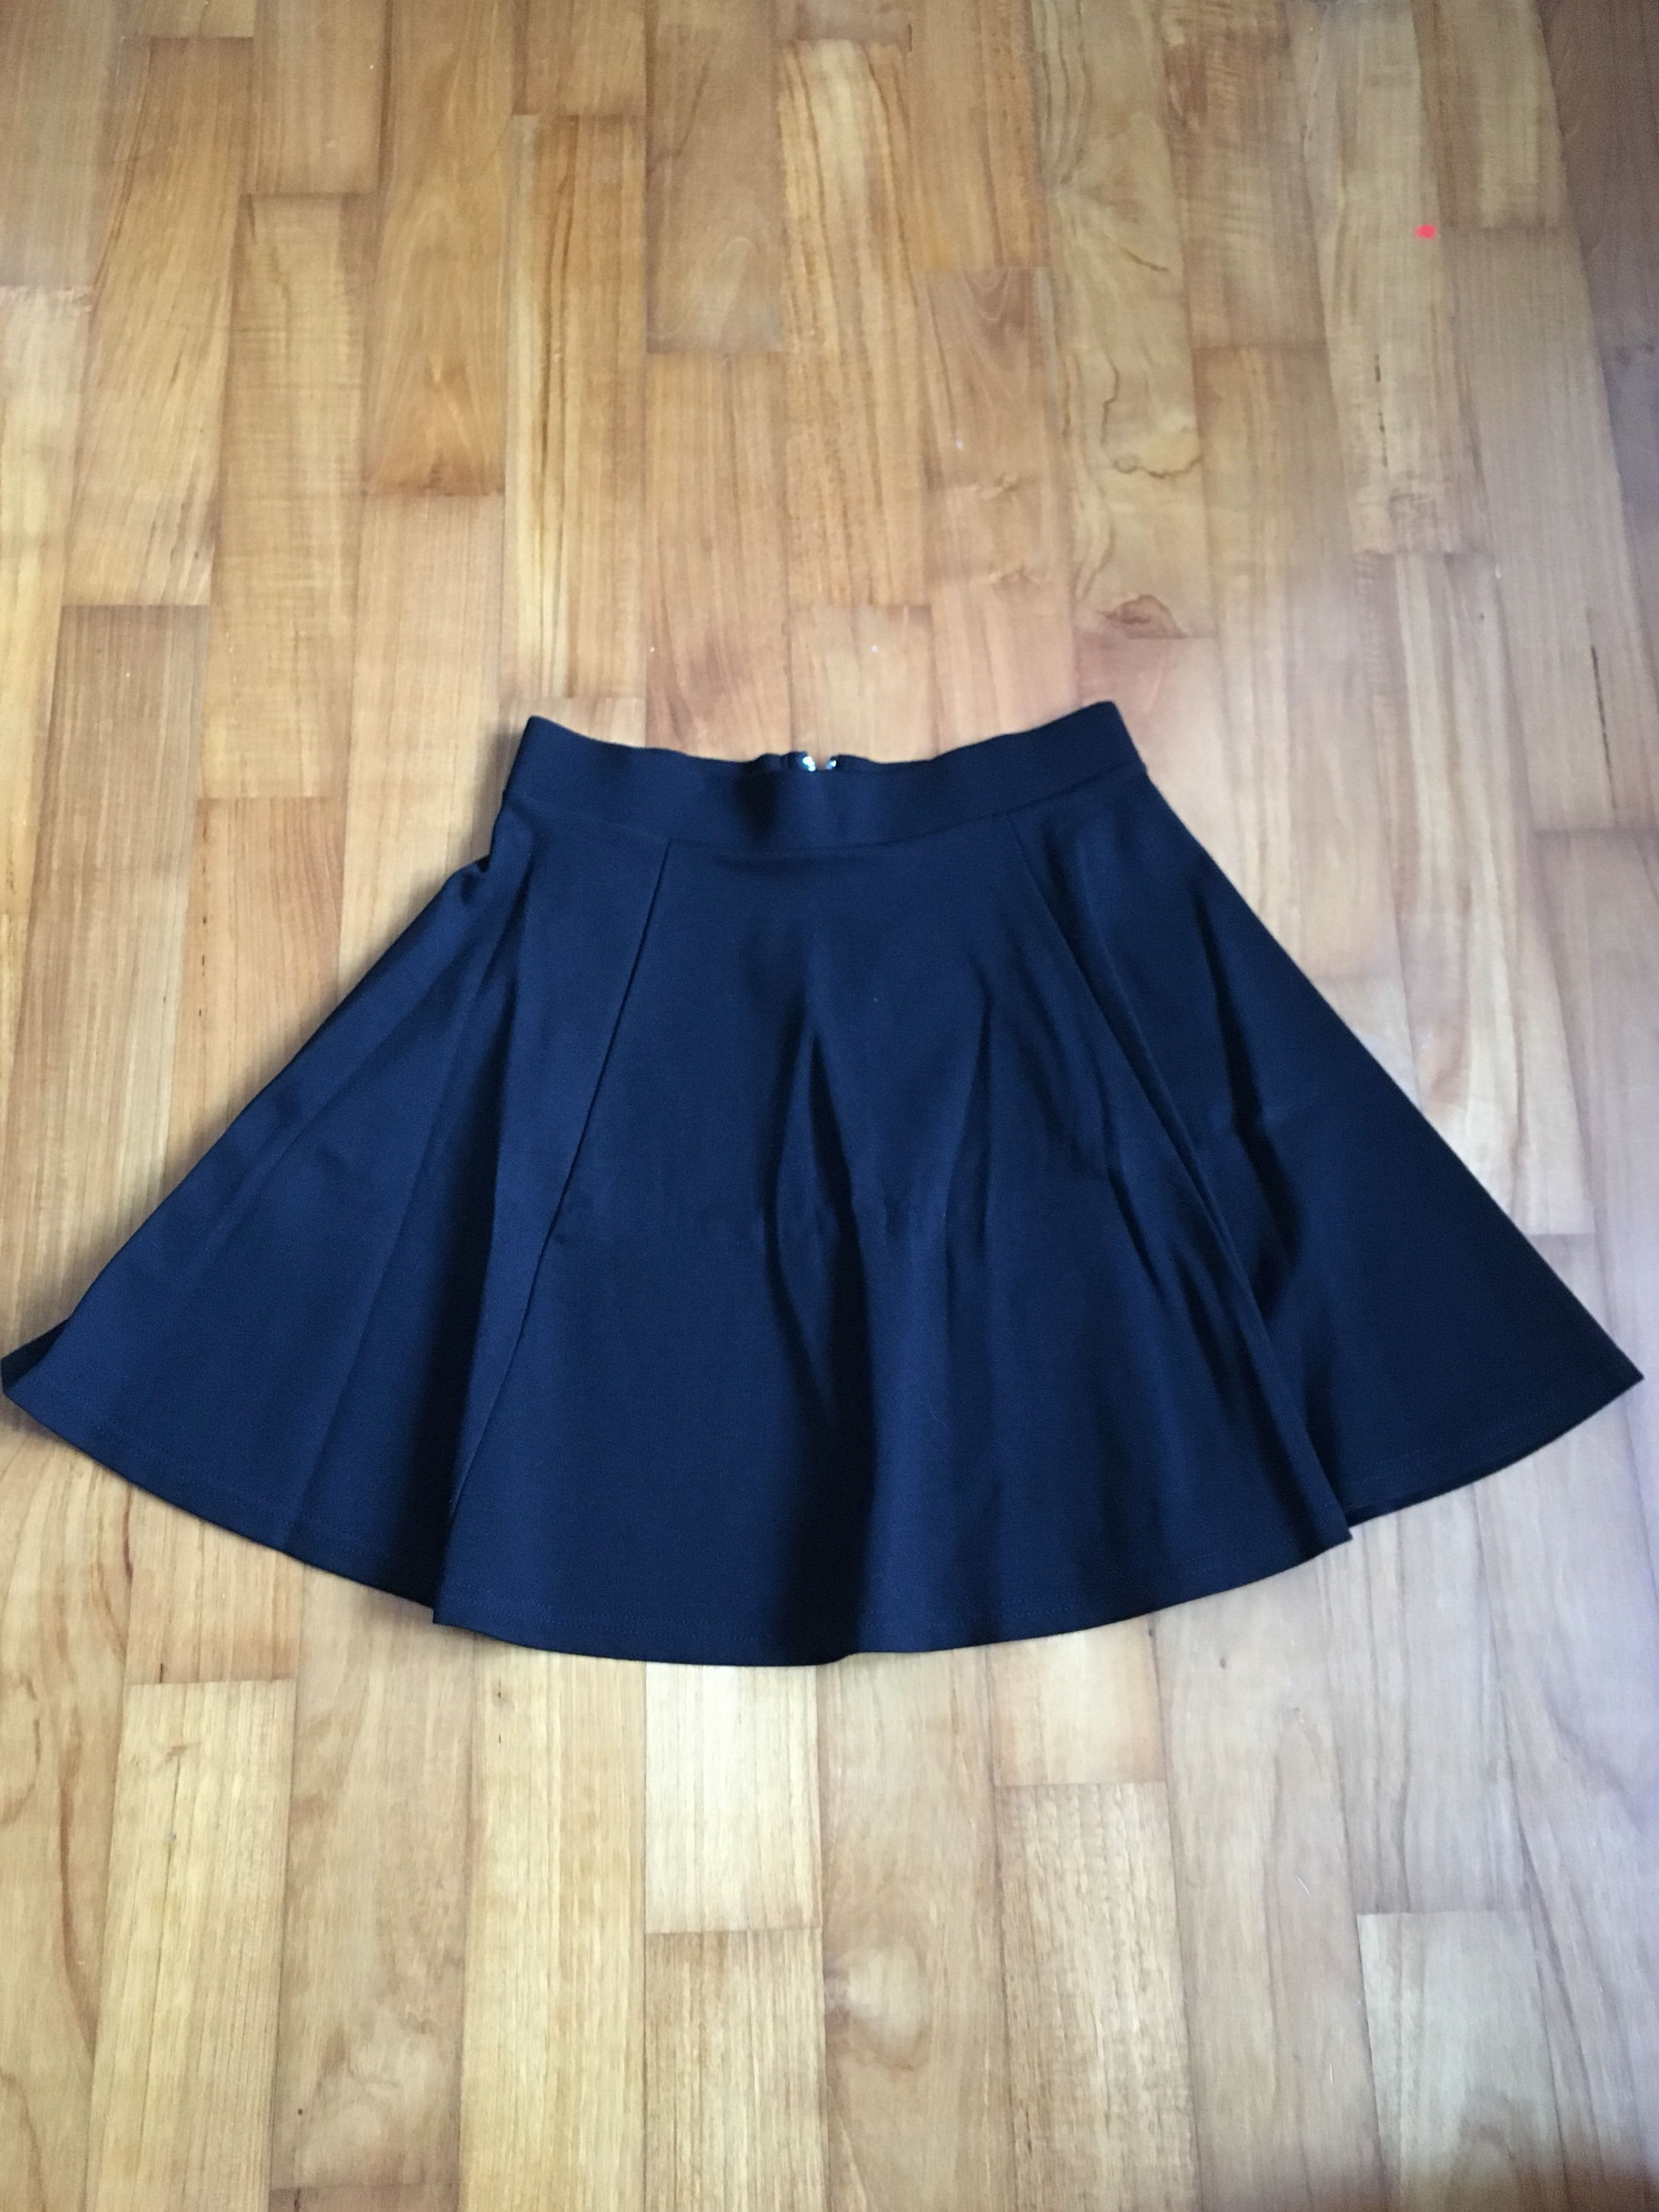 fc01a674a825b H&M skater skirts: 3 for $15 (cat-print, white, black), Women's Fashion,  Clothes, Dresses & Skirts on Carousell